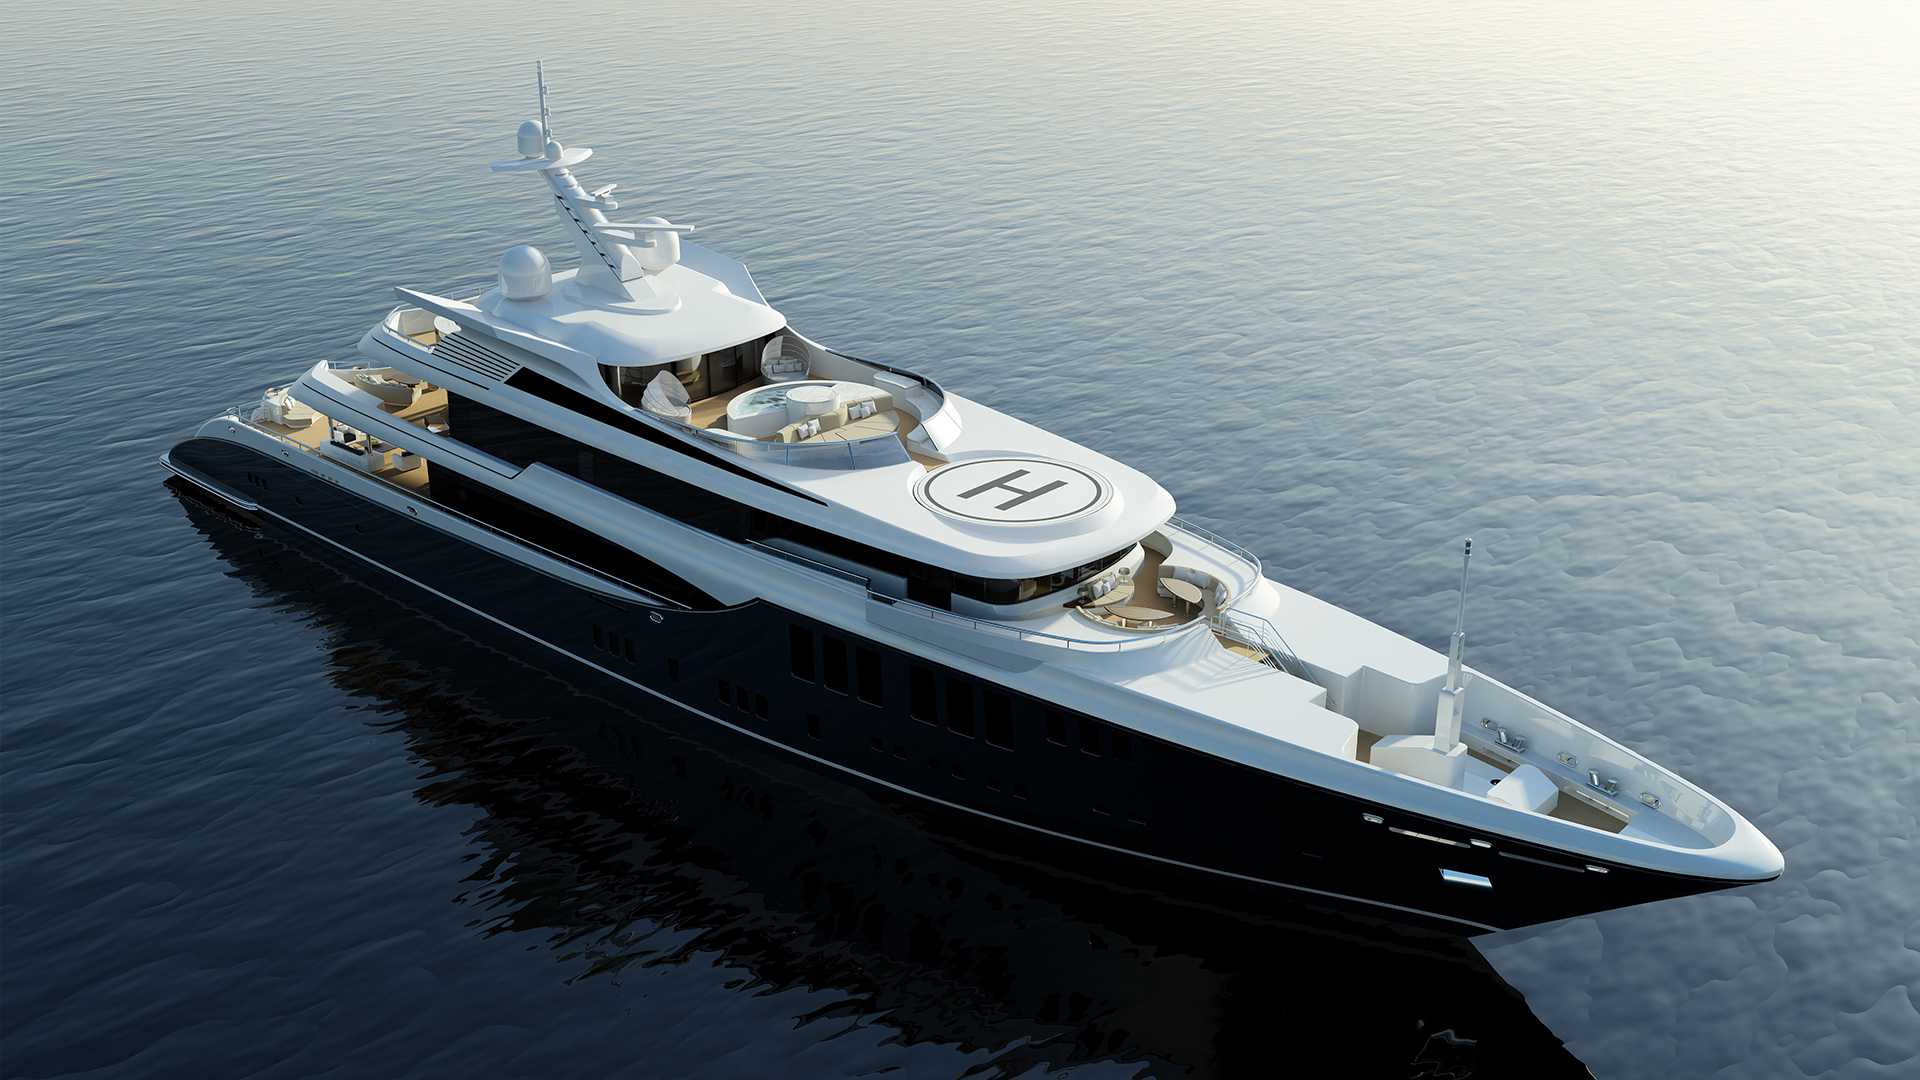 Focus Yacht Design Image Gallery - 73m motor yacht Project